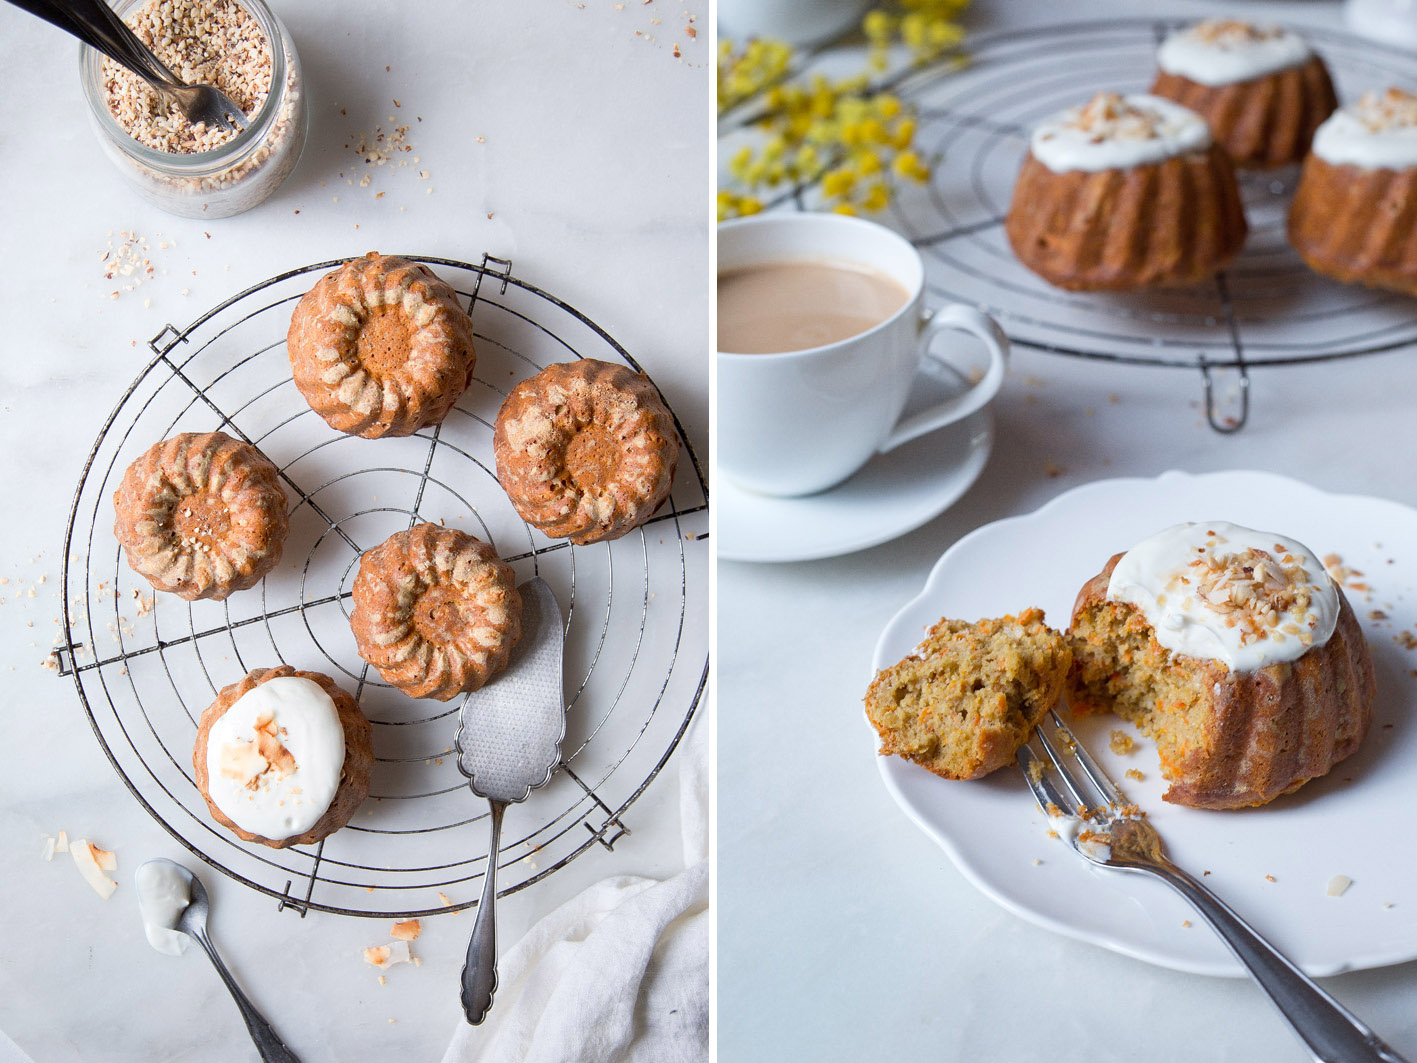 Gesunde Carrot Cakes mit Joghurt Topping